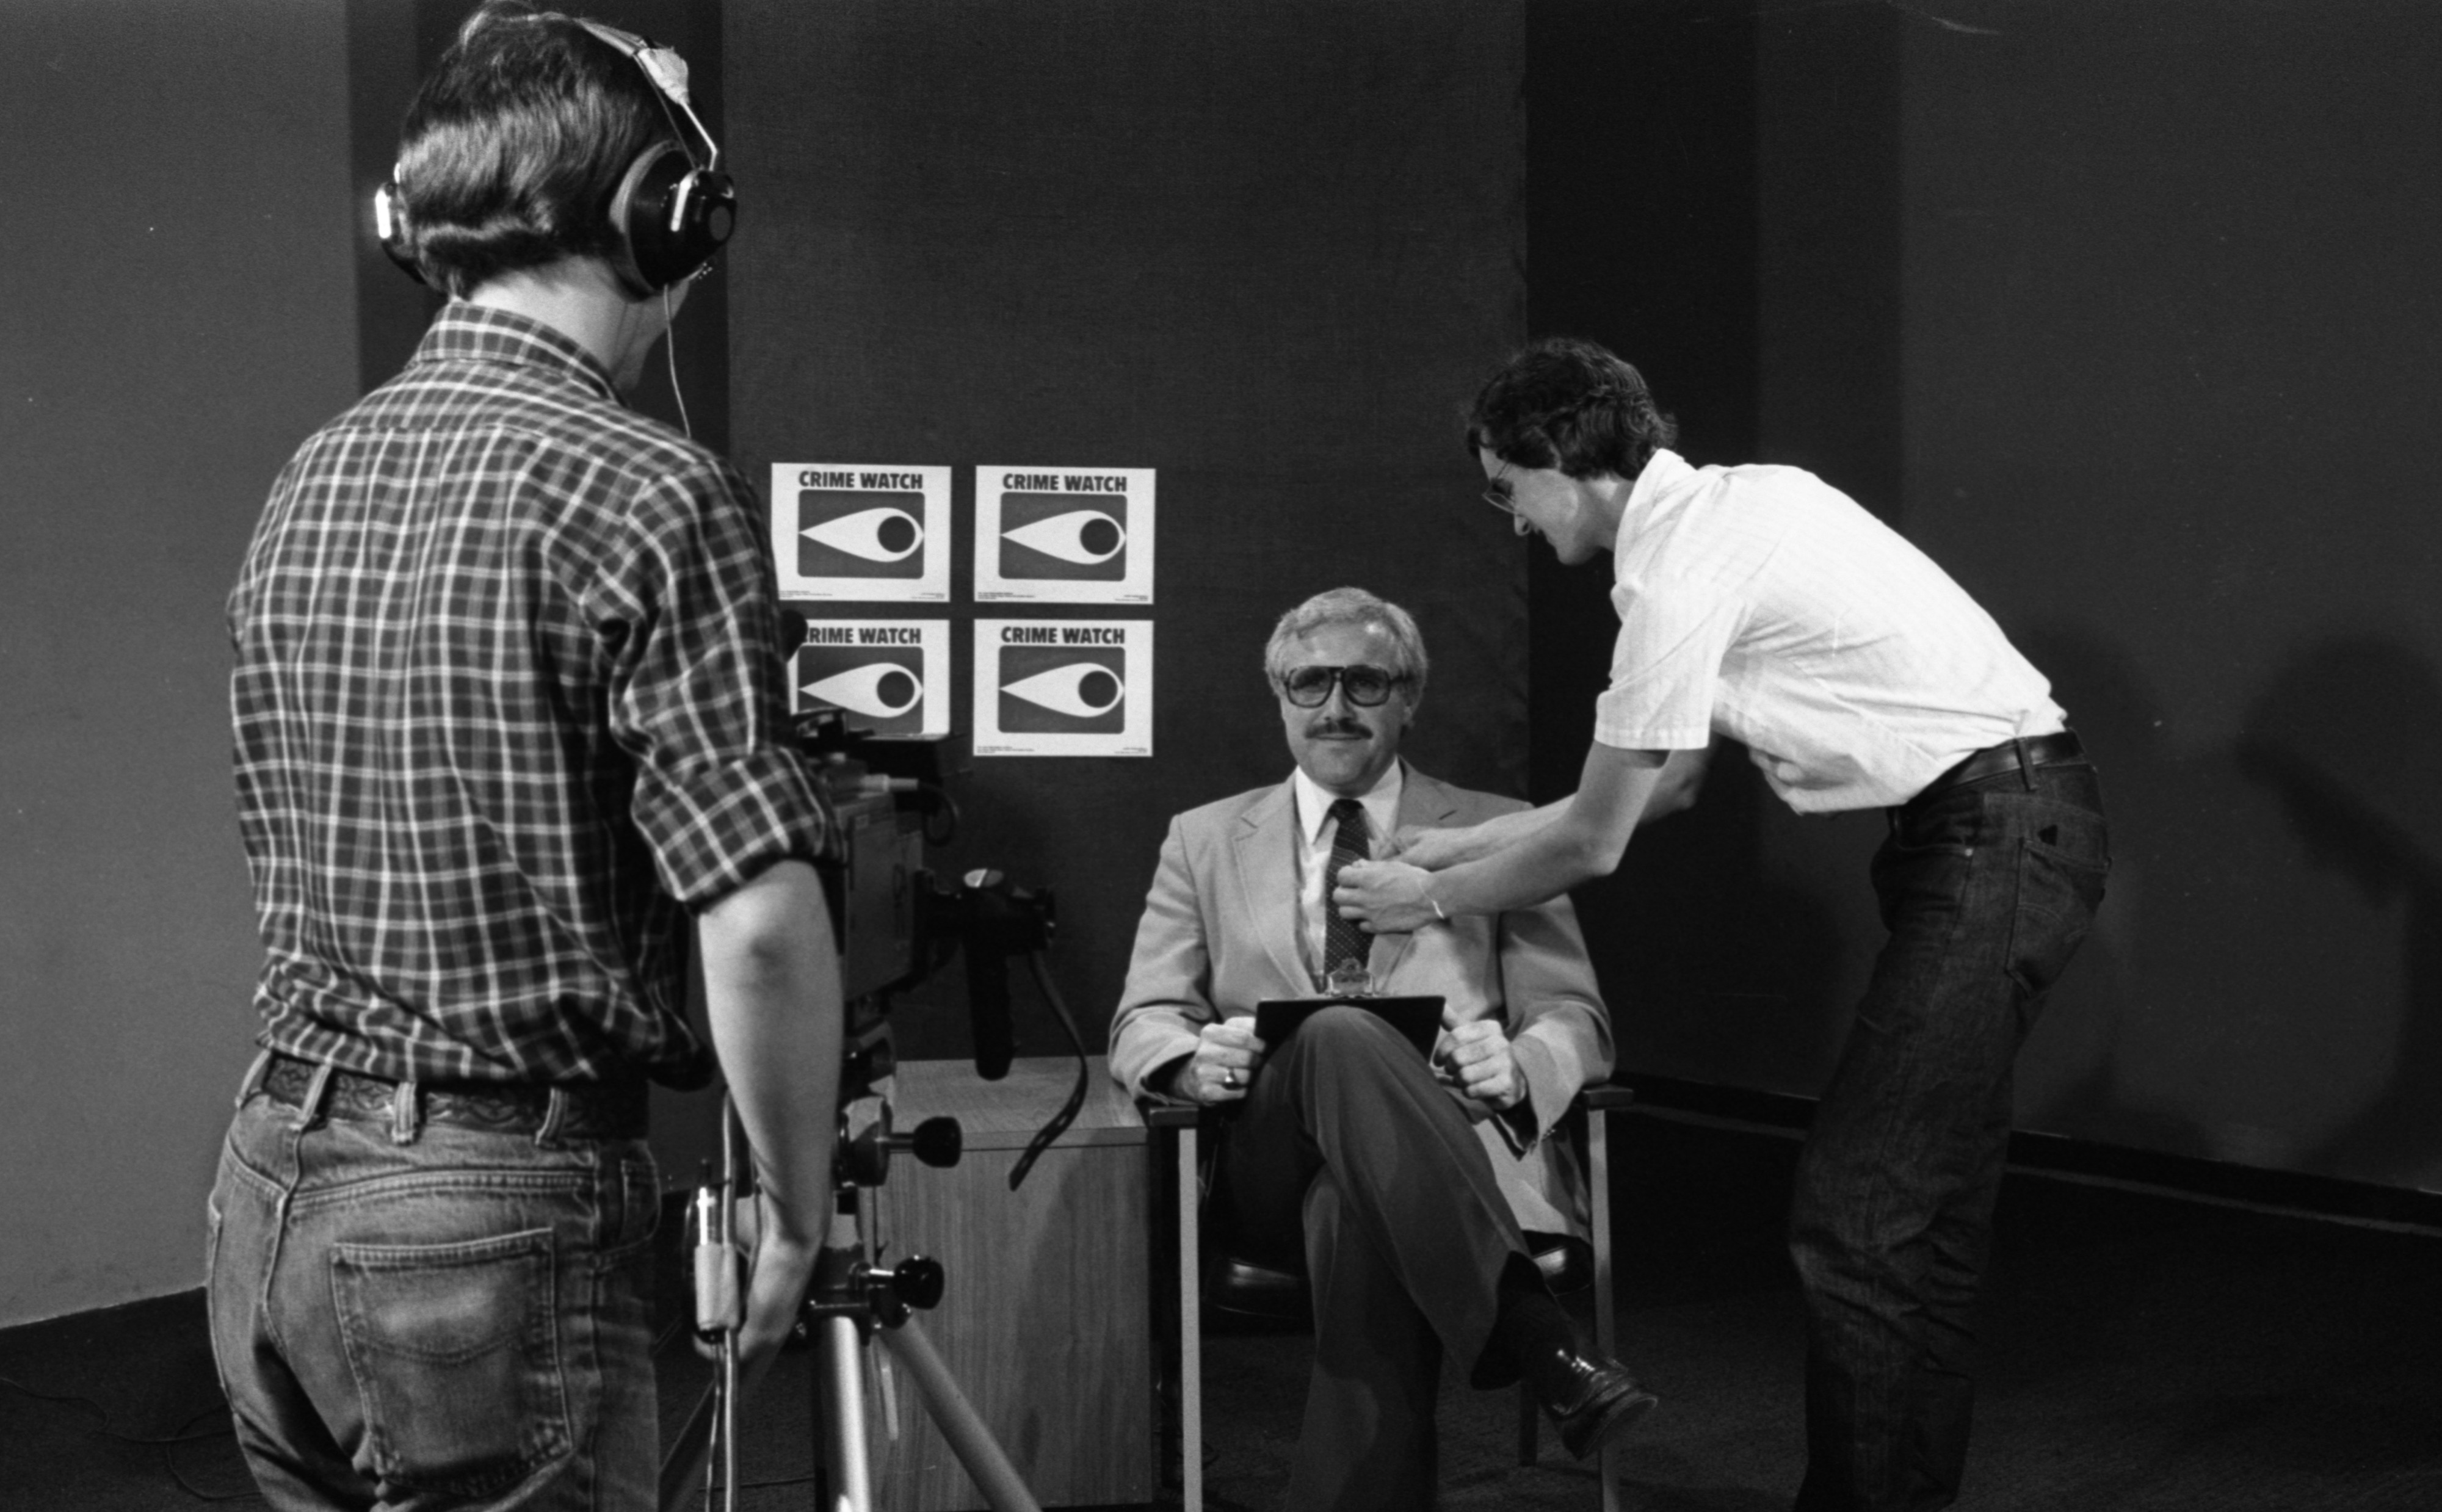 Ann Arbor Police Det. Jerry Wright Readies For Neighborhood Watch Report Cable Show, August 1984 image